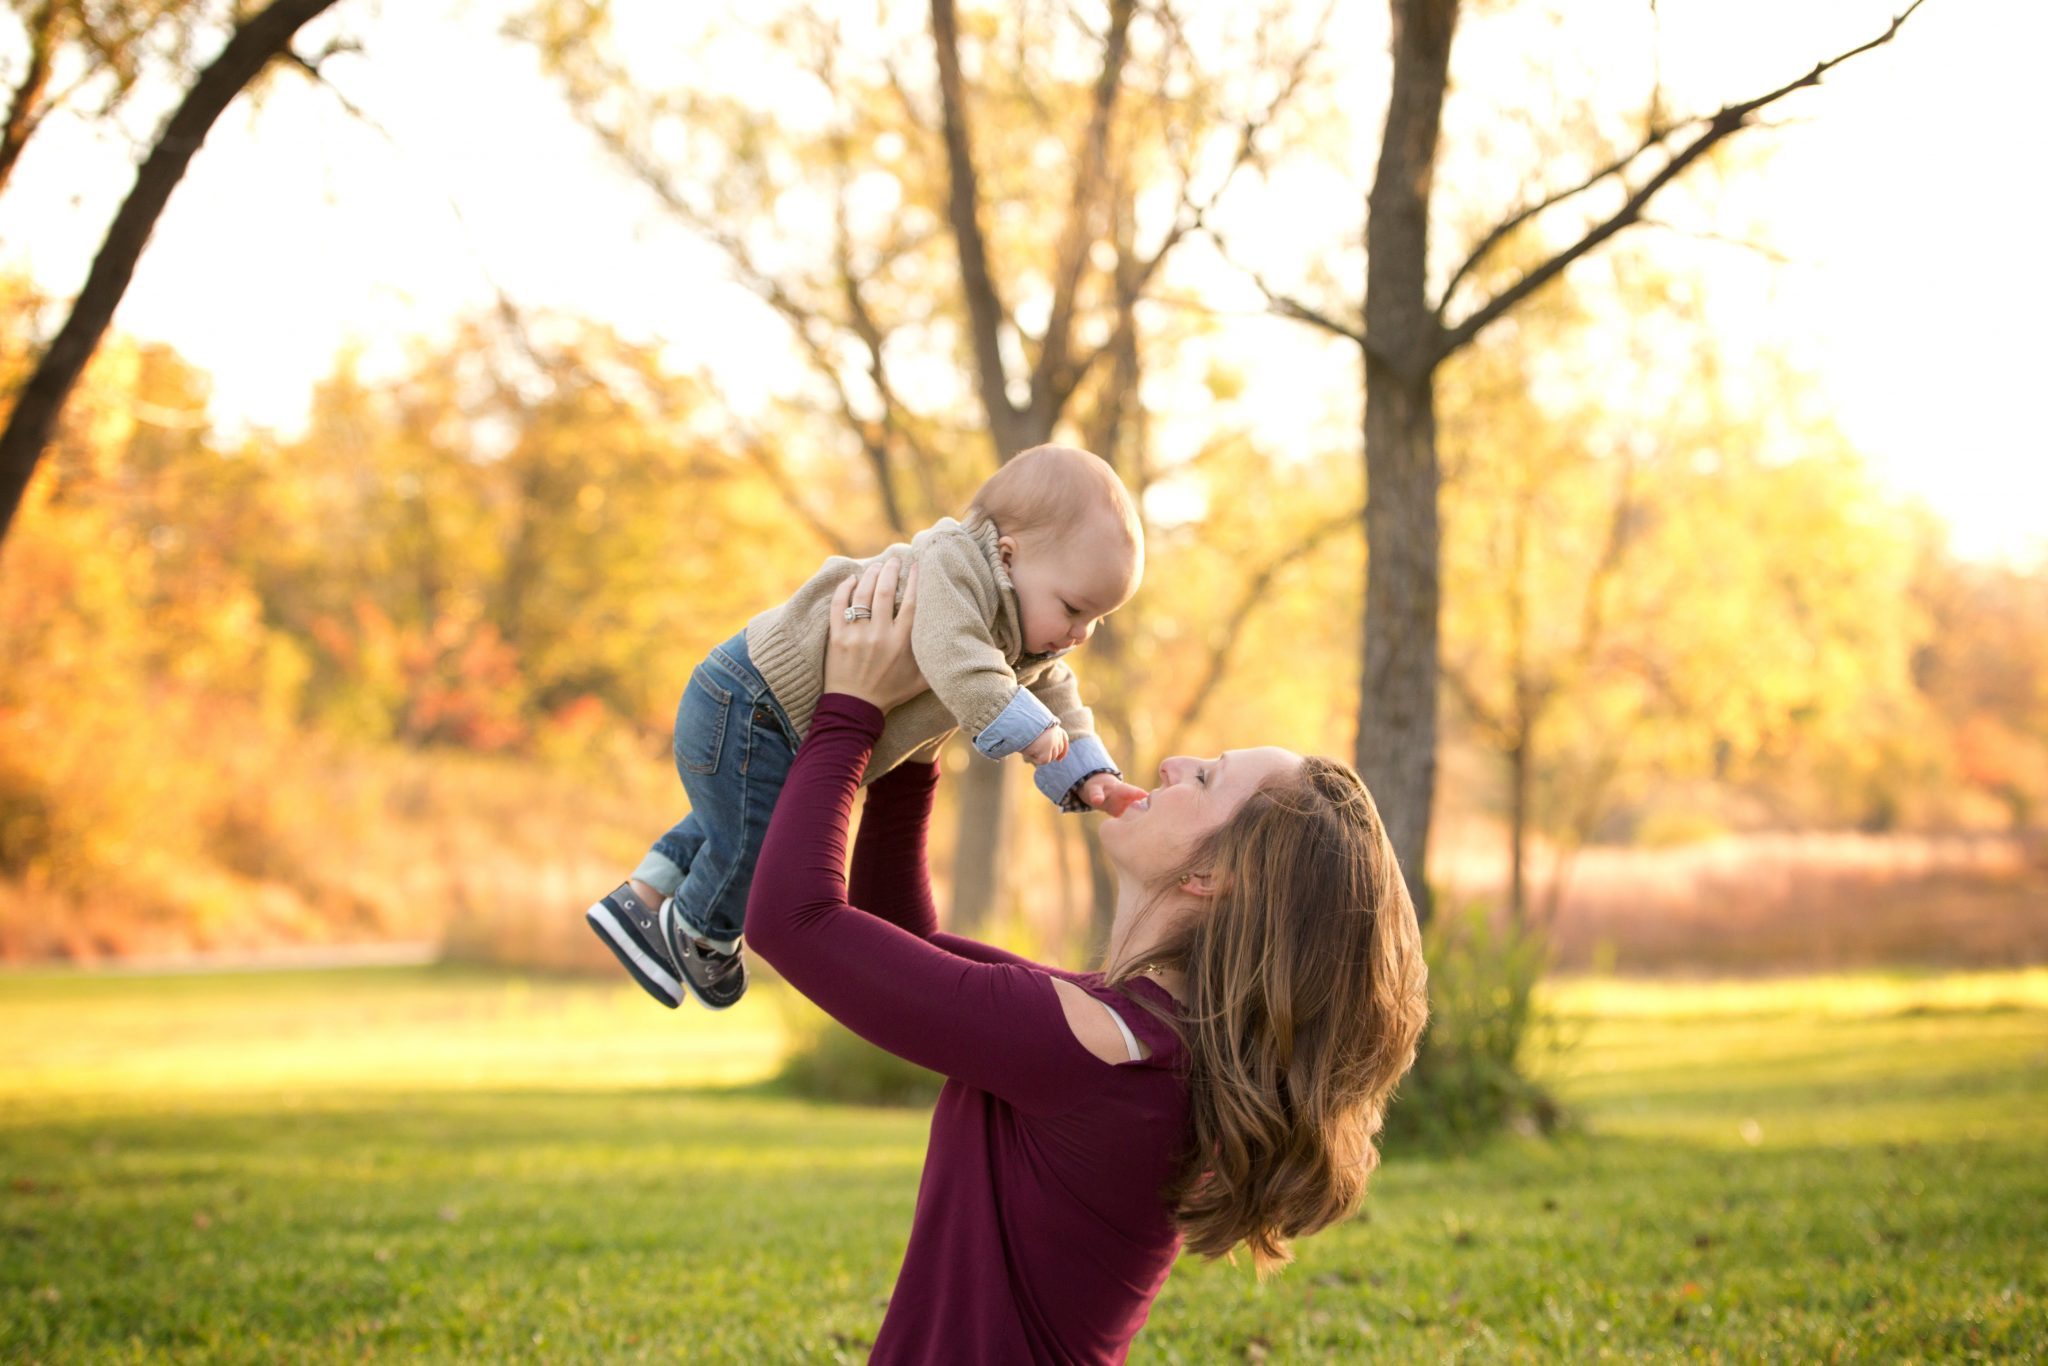 mom holding her baby boy up in the air with fall foliage behind them